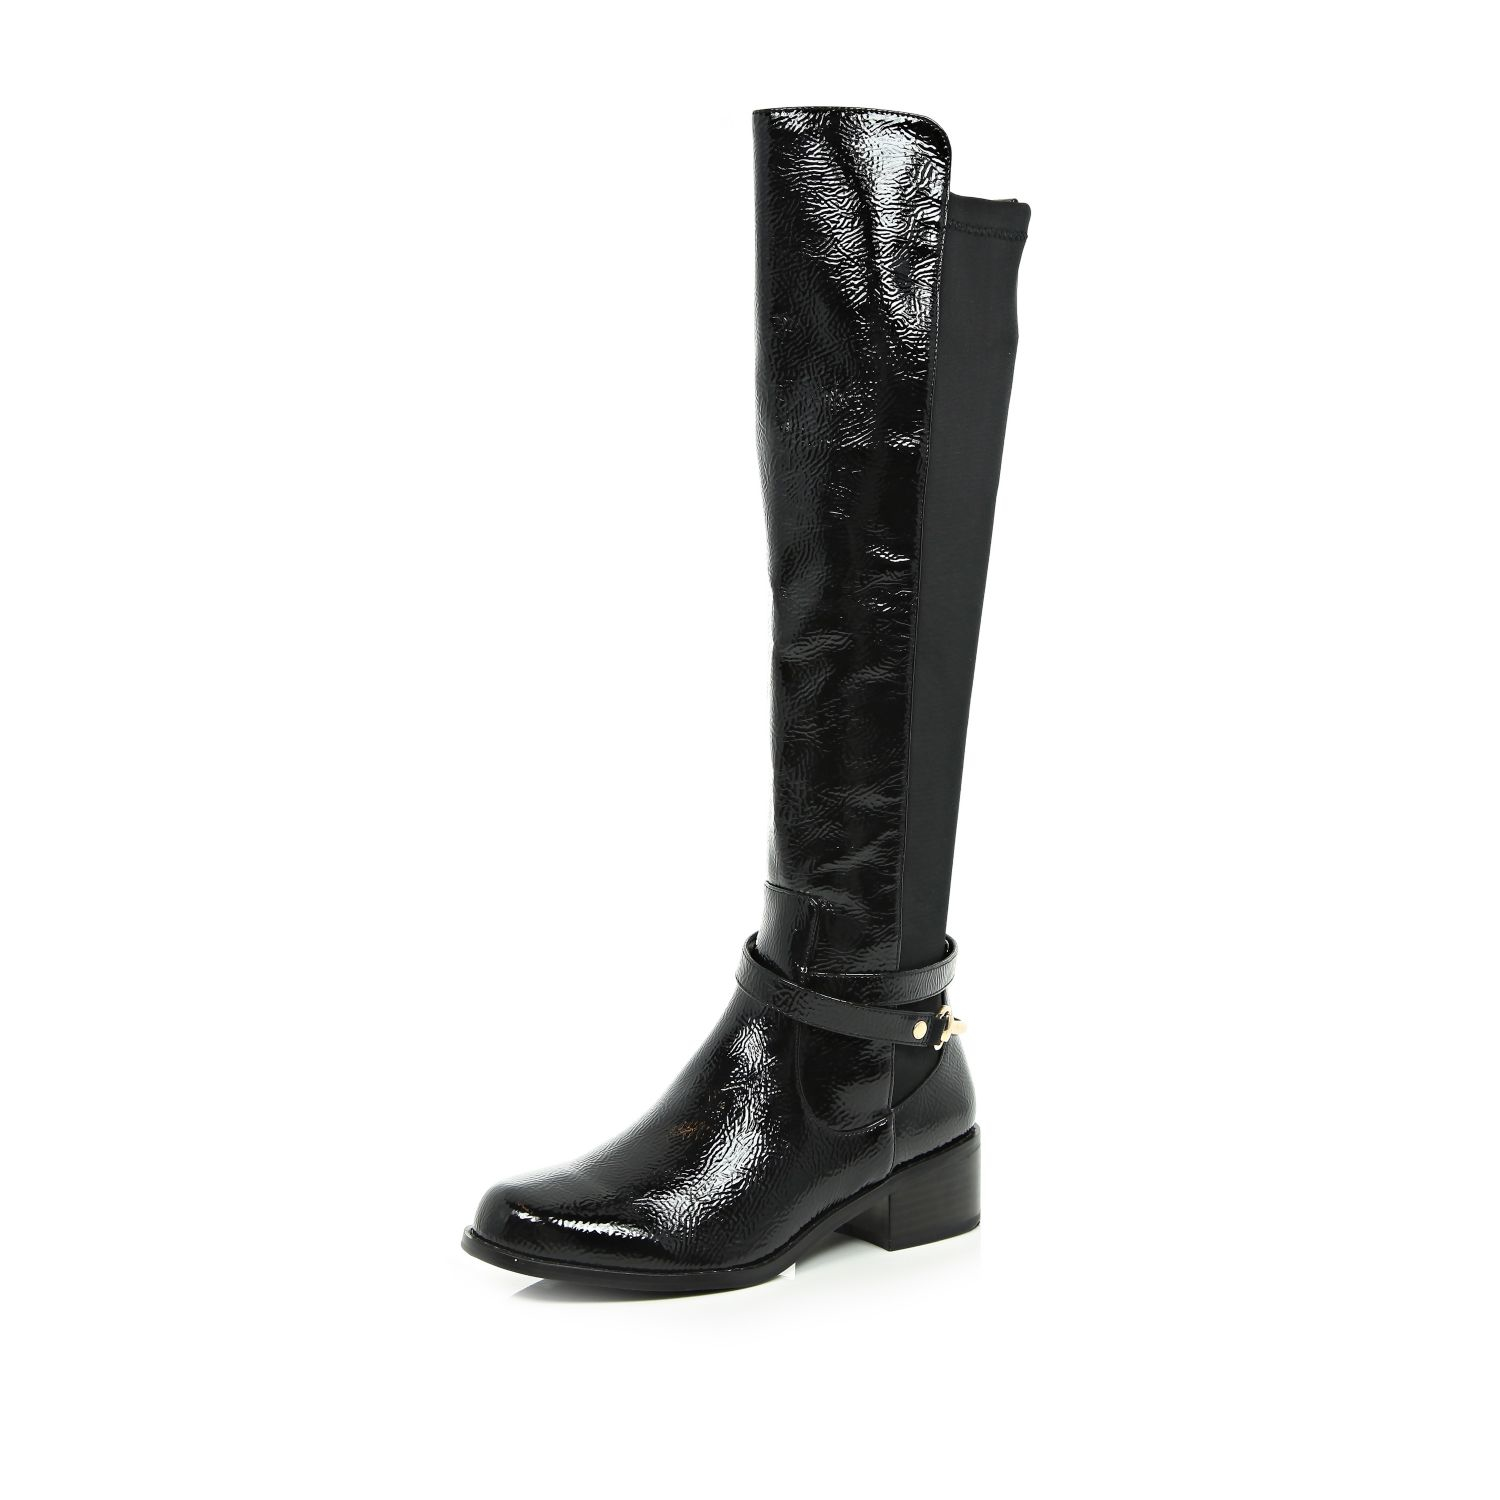 River island Black Patent Over The Knee Boots in Black | Lyst